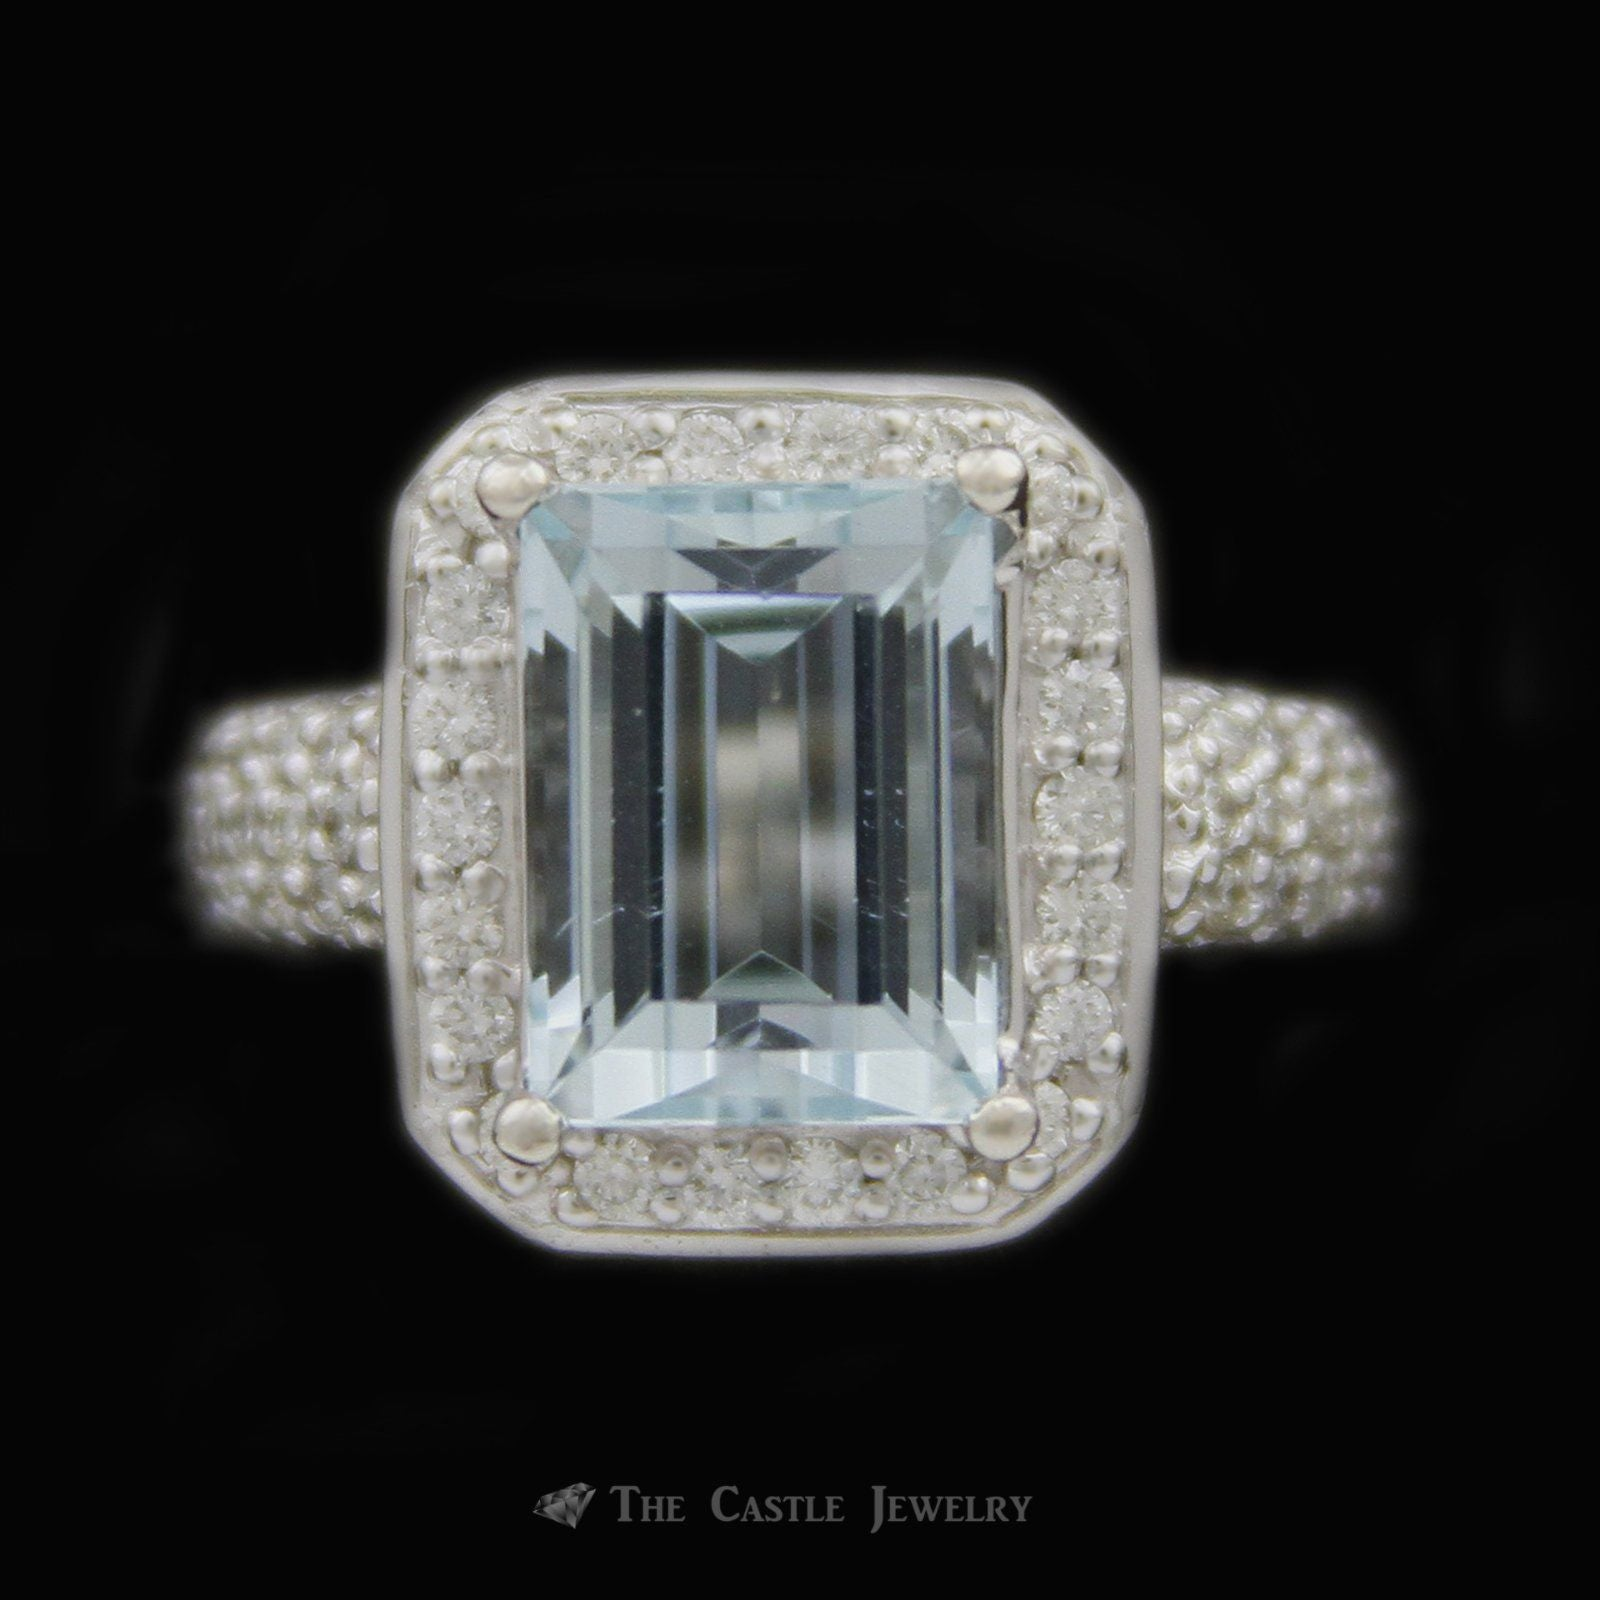 Emerald Cut 4.21ct Aquamarine Ring w/ Round Brilliant Cut Diamond Bezel & Sides in 14k White Gold